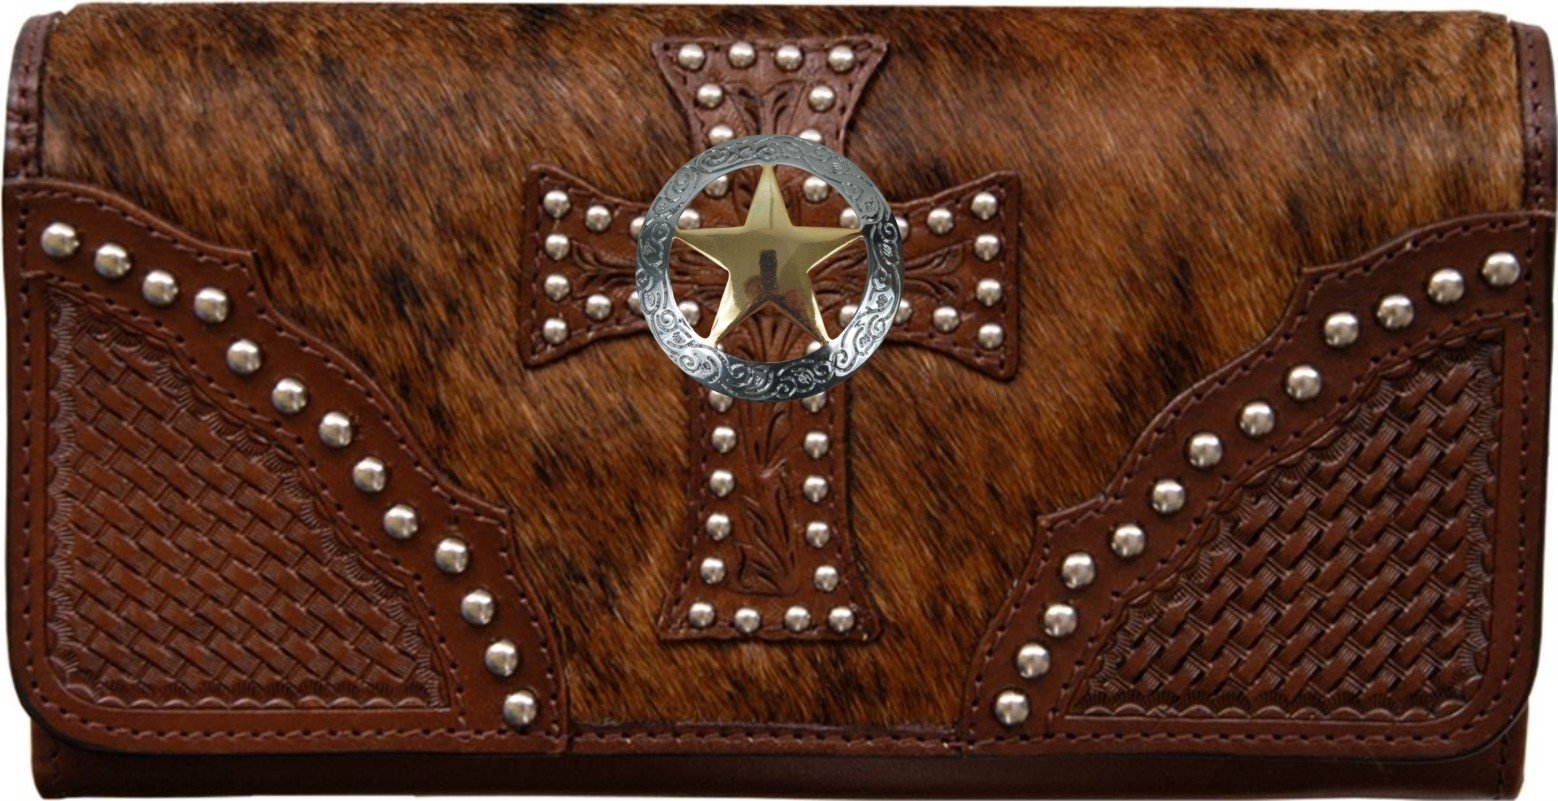 Custom Texas Ranger Natural Hair Christian Clutch Wallet with removable checkbook